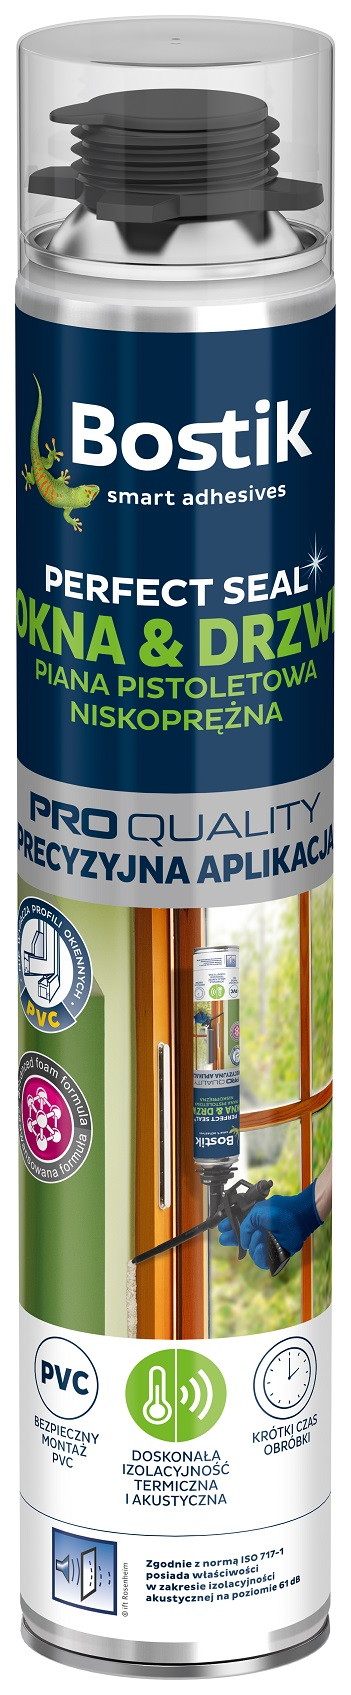 20201010 bostik - perfect seal - okna  amp  drzwi piana pistoletowa niskoprezna